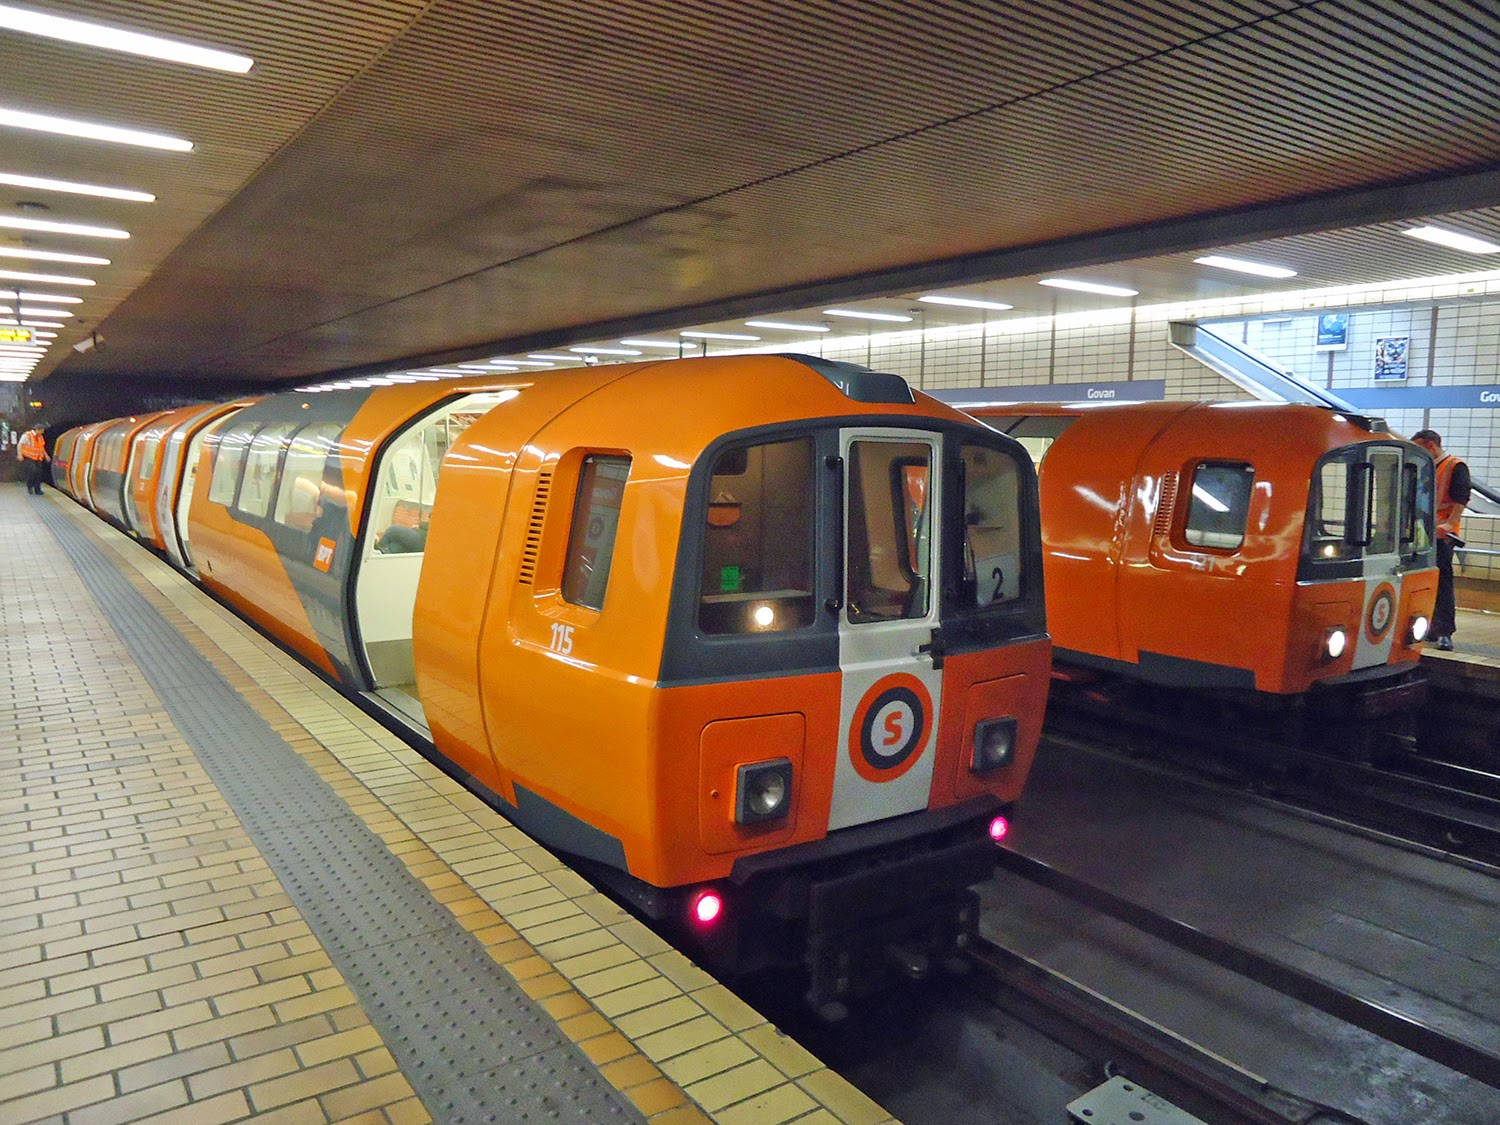 Glasgow Subway, Glasgow, Scotland